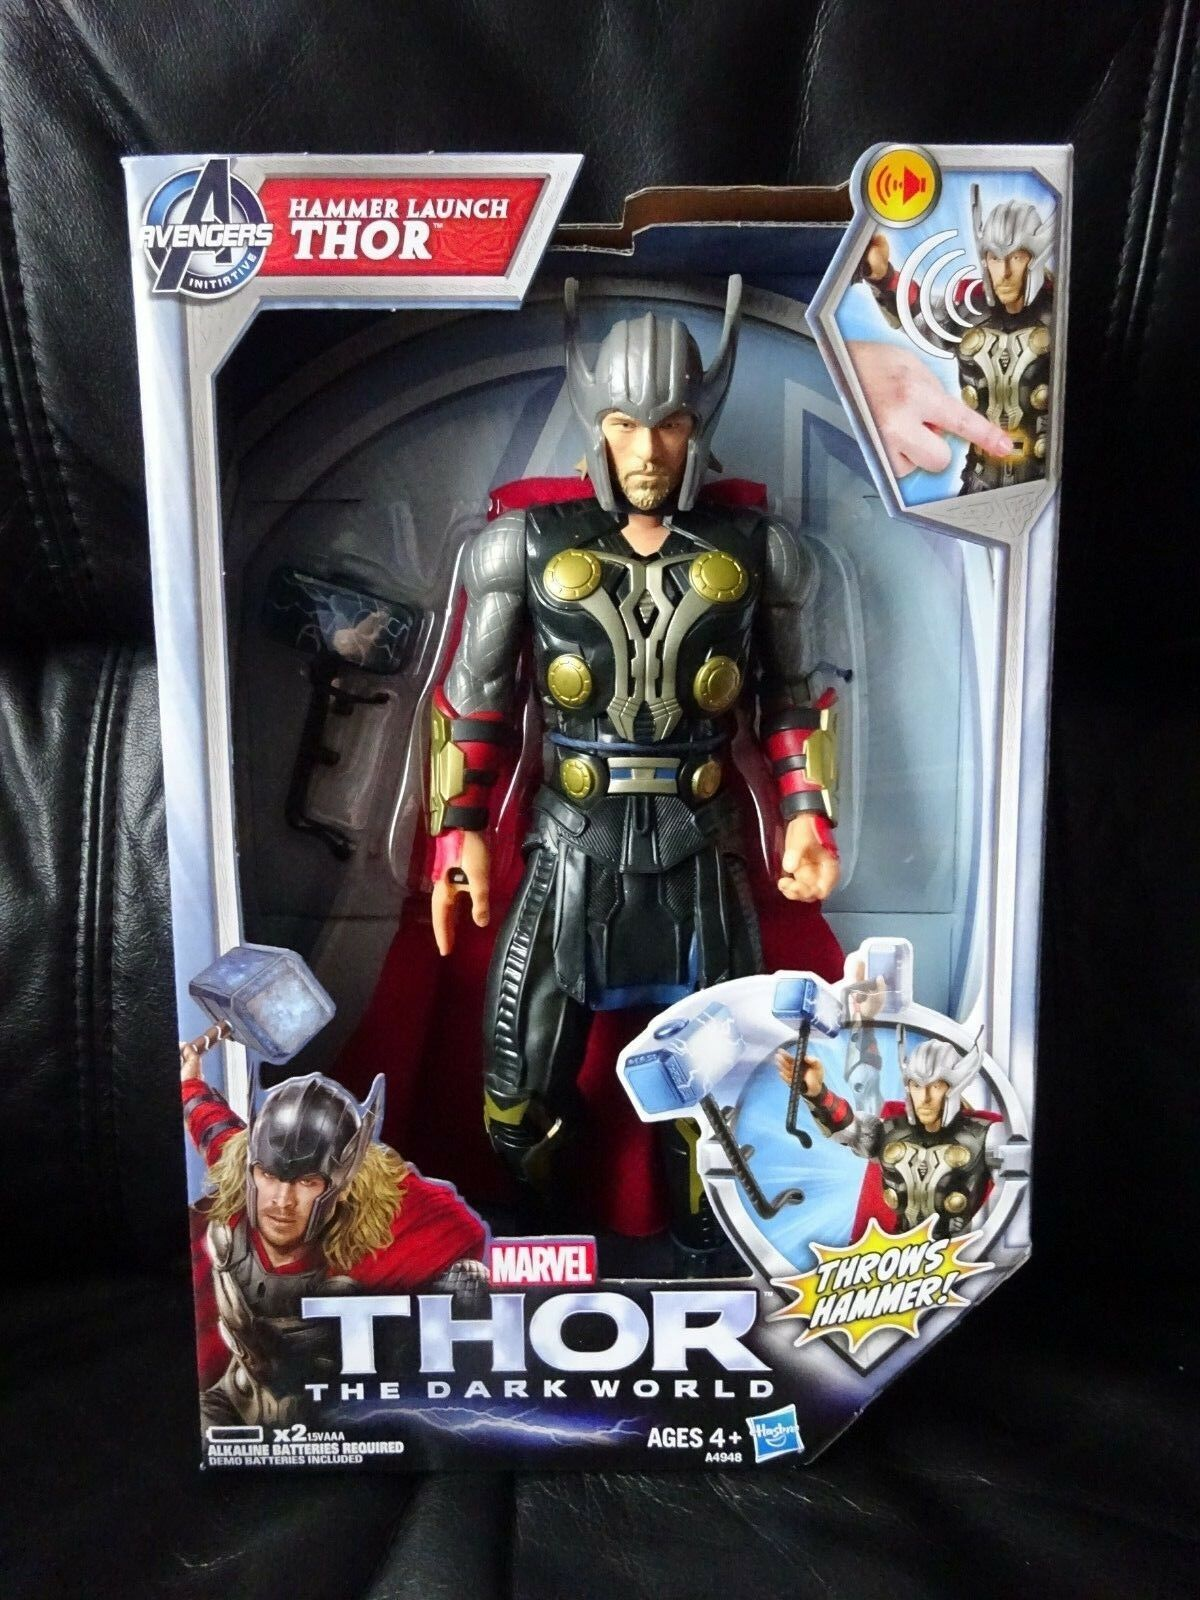 Marvel Thor Thor Thor The Dark World Hammer Launch THOR  Thor 11  Action Figure AVENGERS b4aa1b